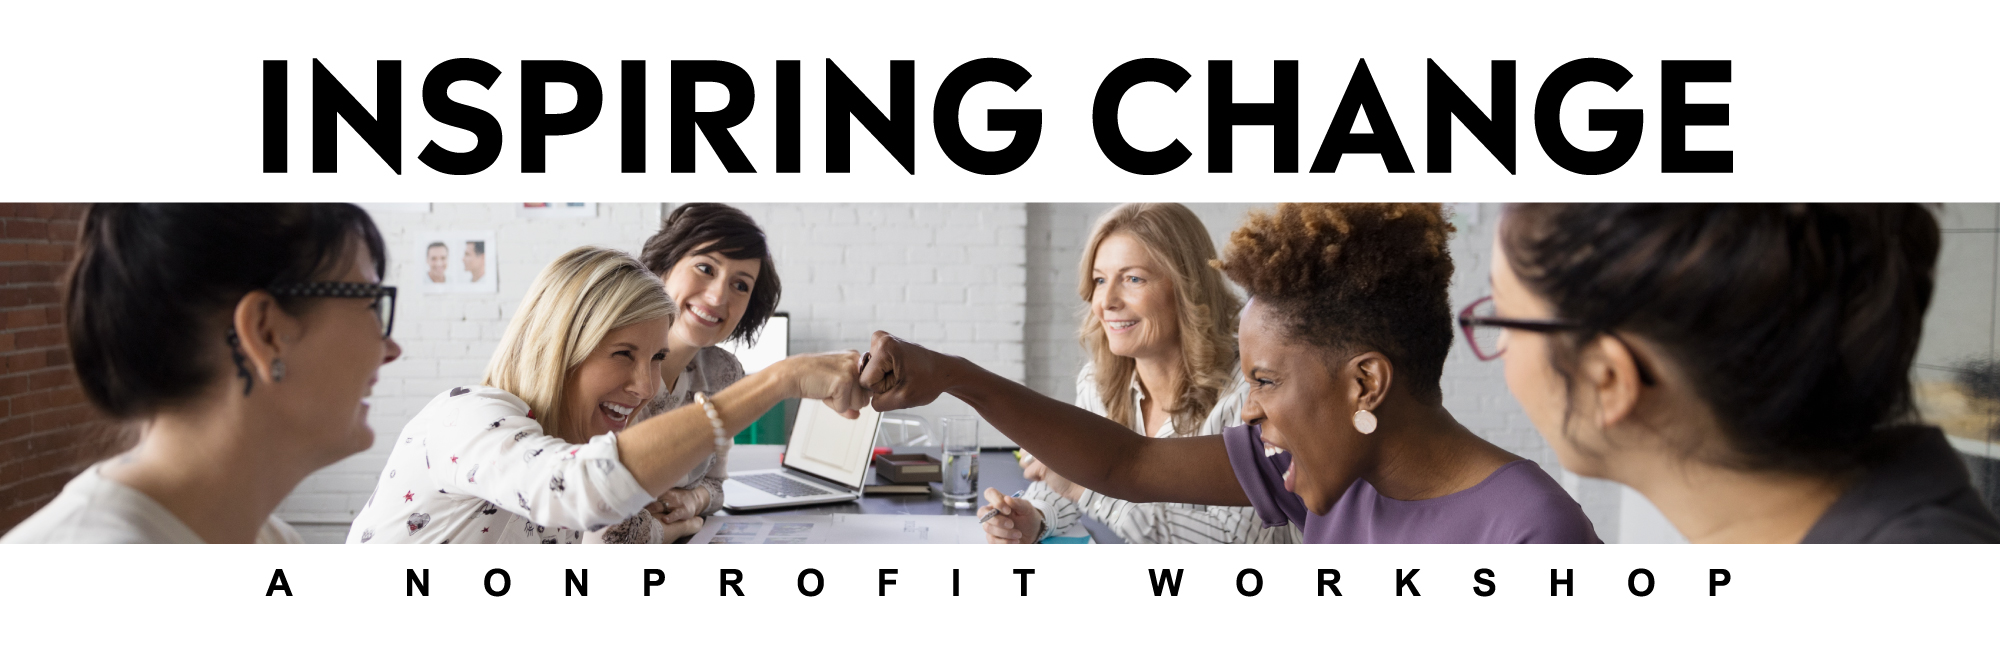 Inspiring Change Workshop